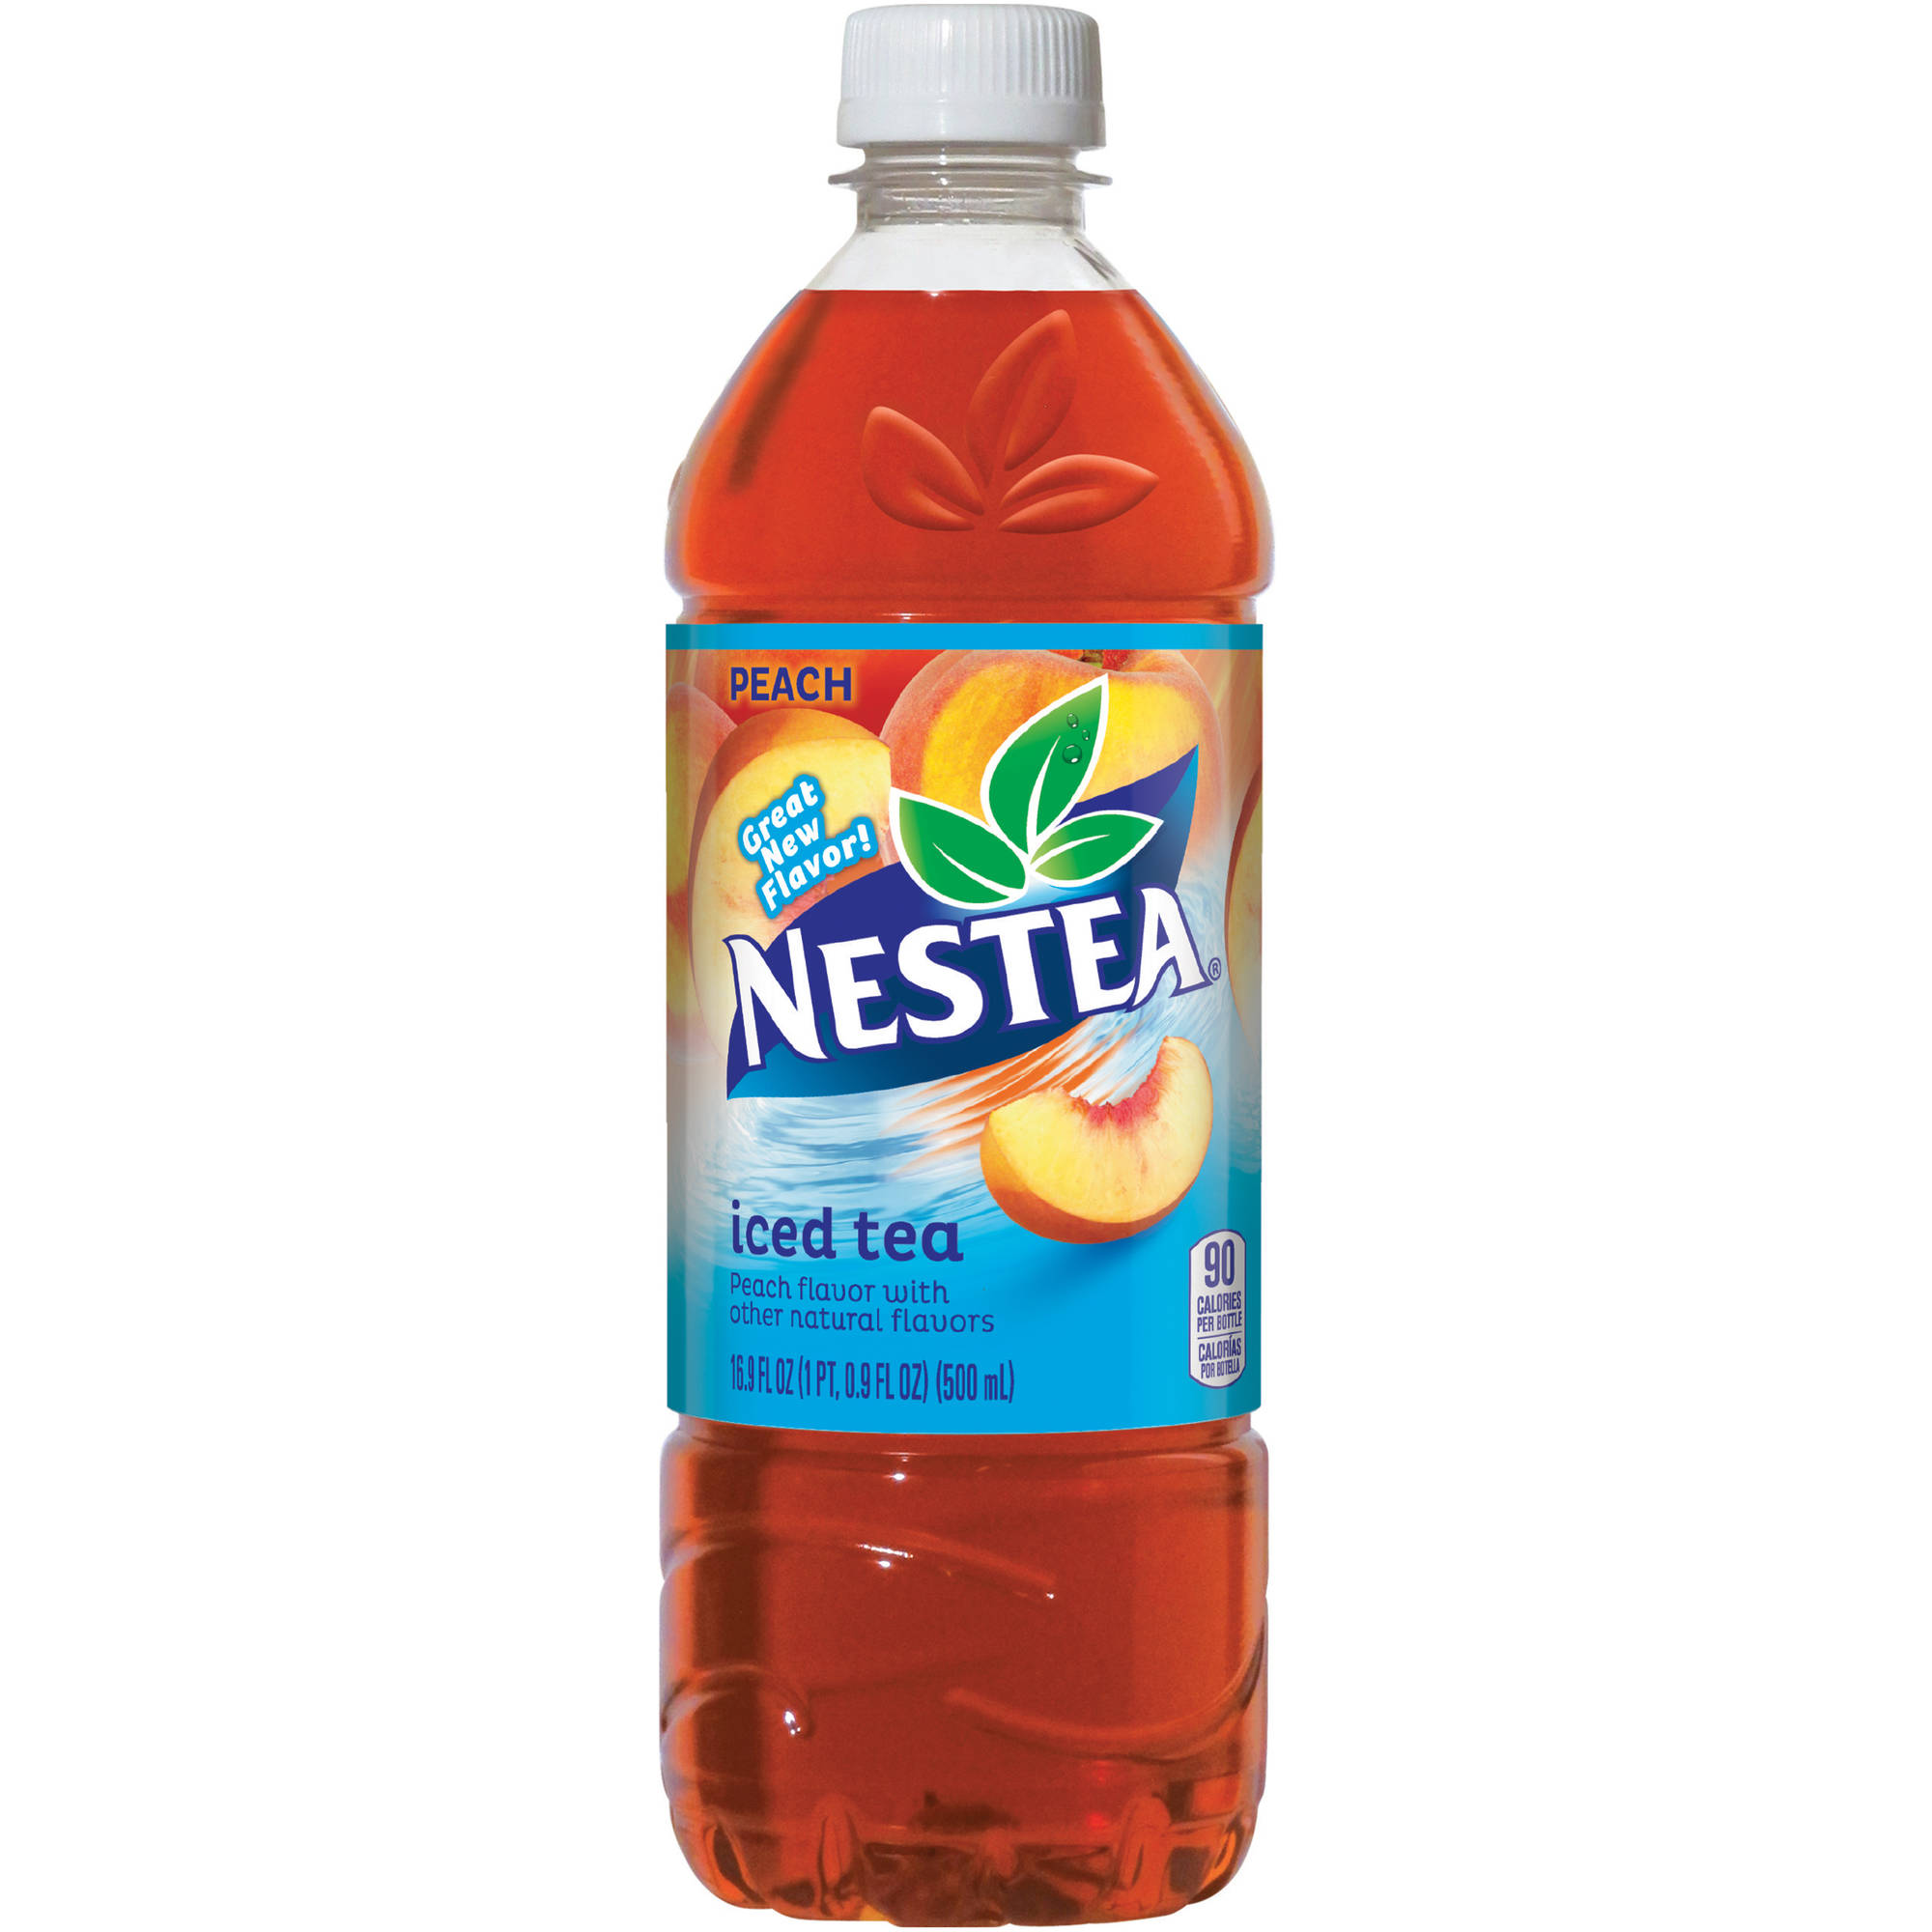 Nestea Peach Iced Tea, 16.9 fl oz, 24 pack